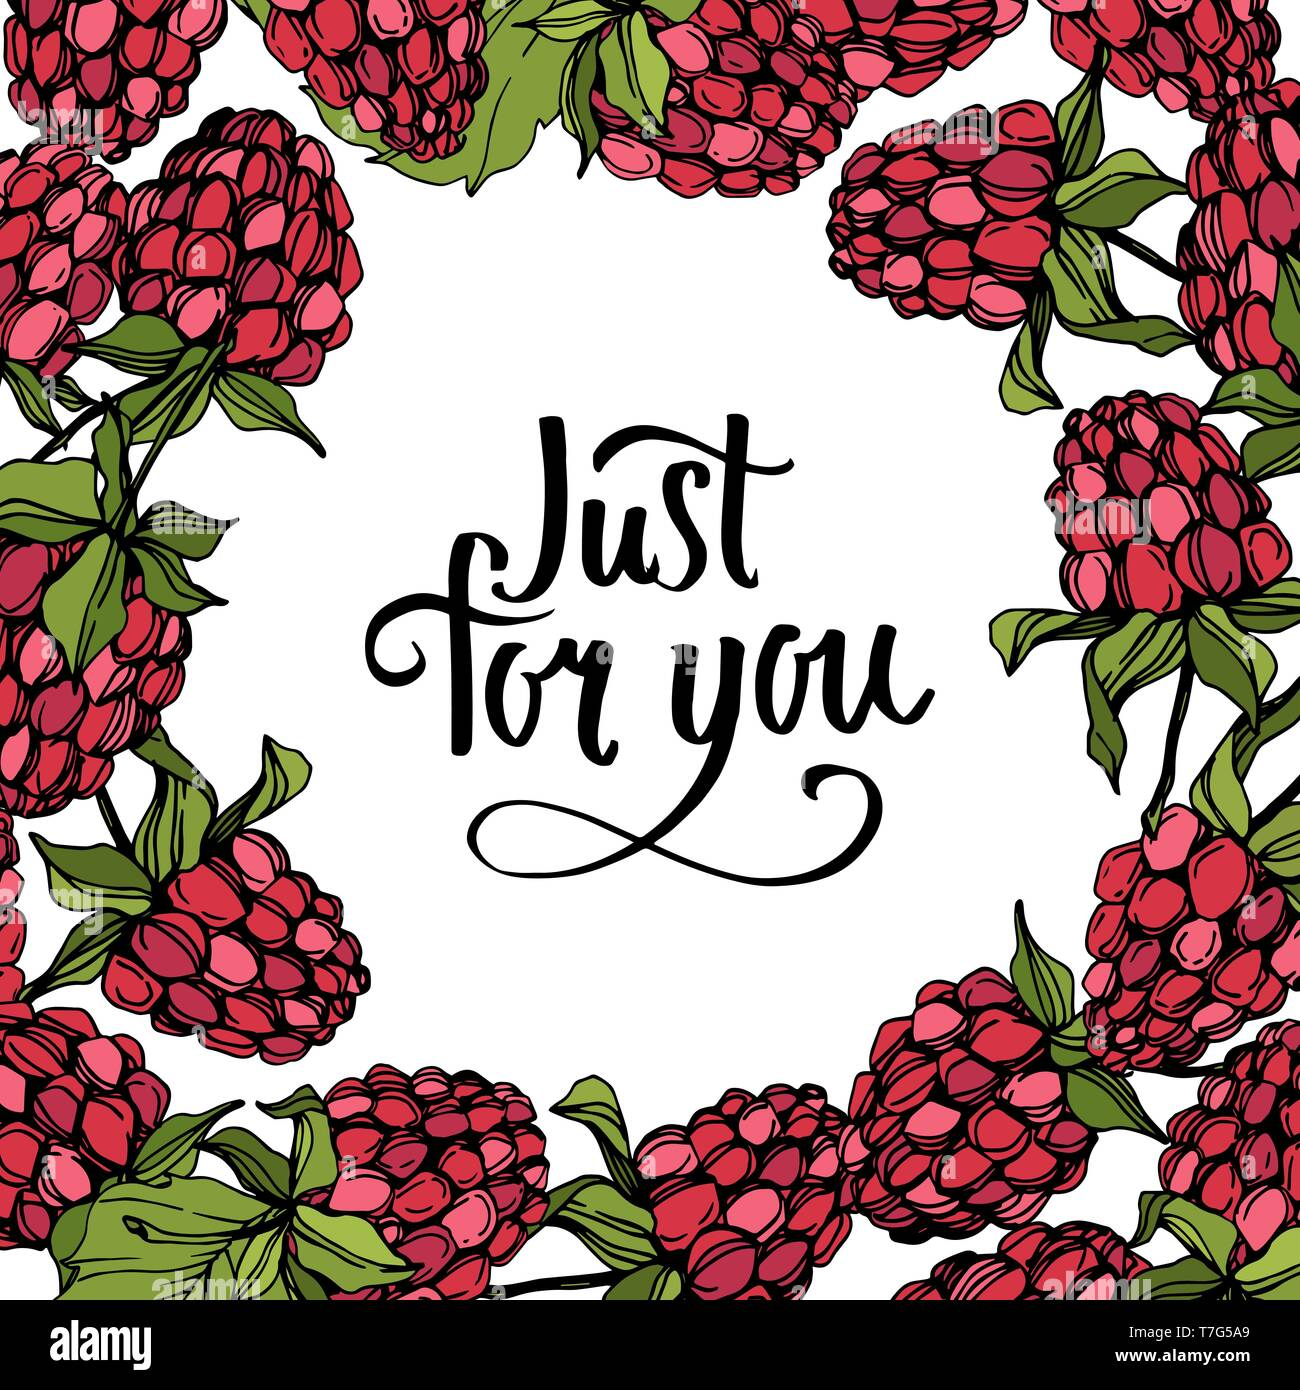 Vector Raspberry Healthy Food Isolated Red And Green Engraved Ink Art Frame Border Ornament Square Stock Vector Image Art Alamy